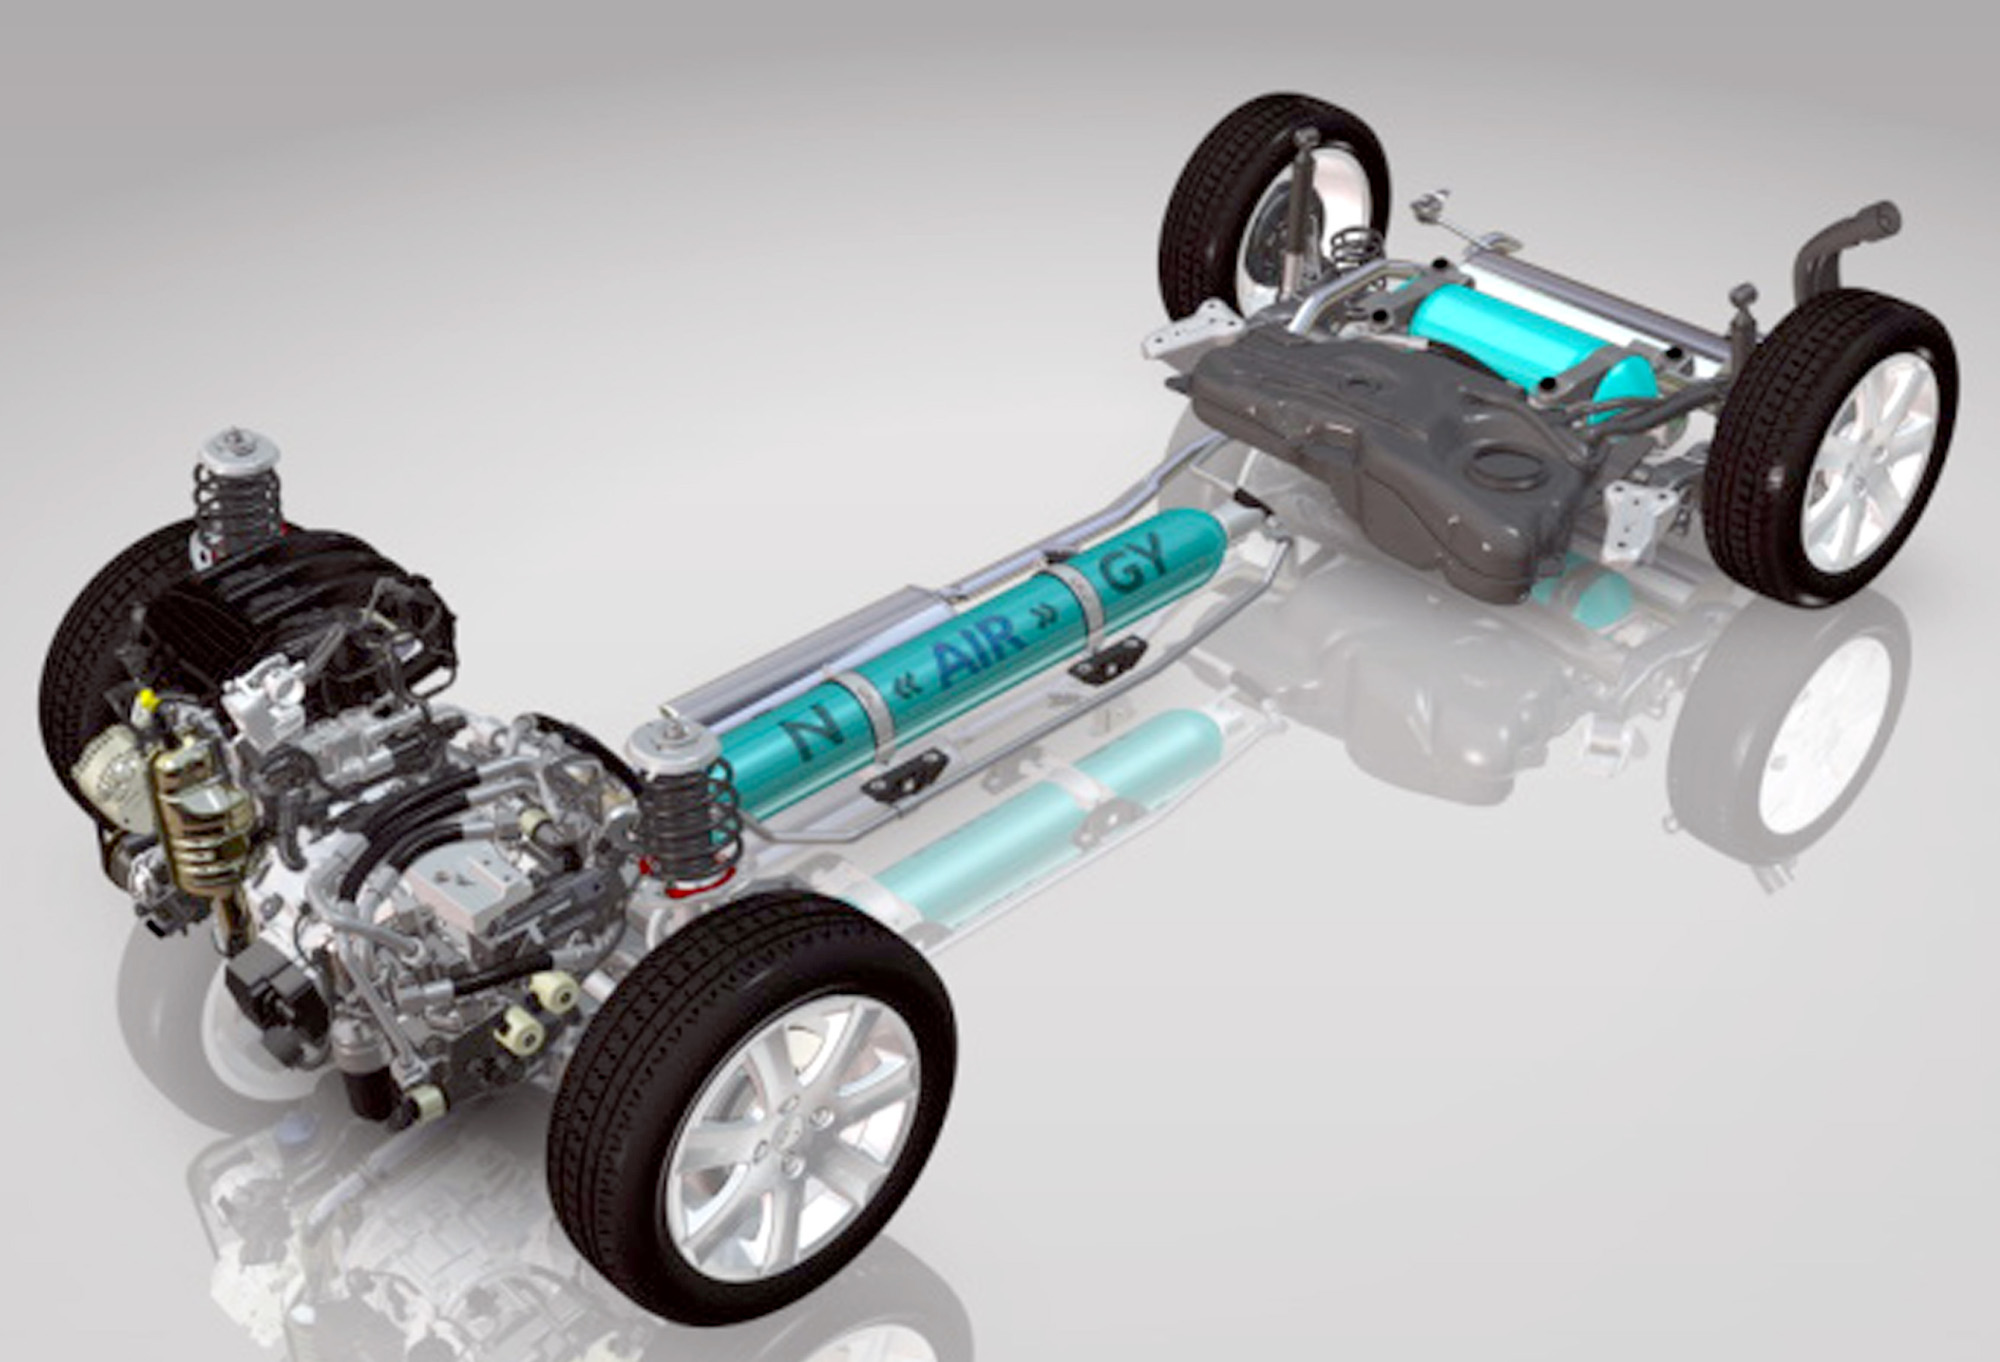 How PeugeotCitroens Hybrid Air System Works The Car That Runs